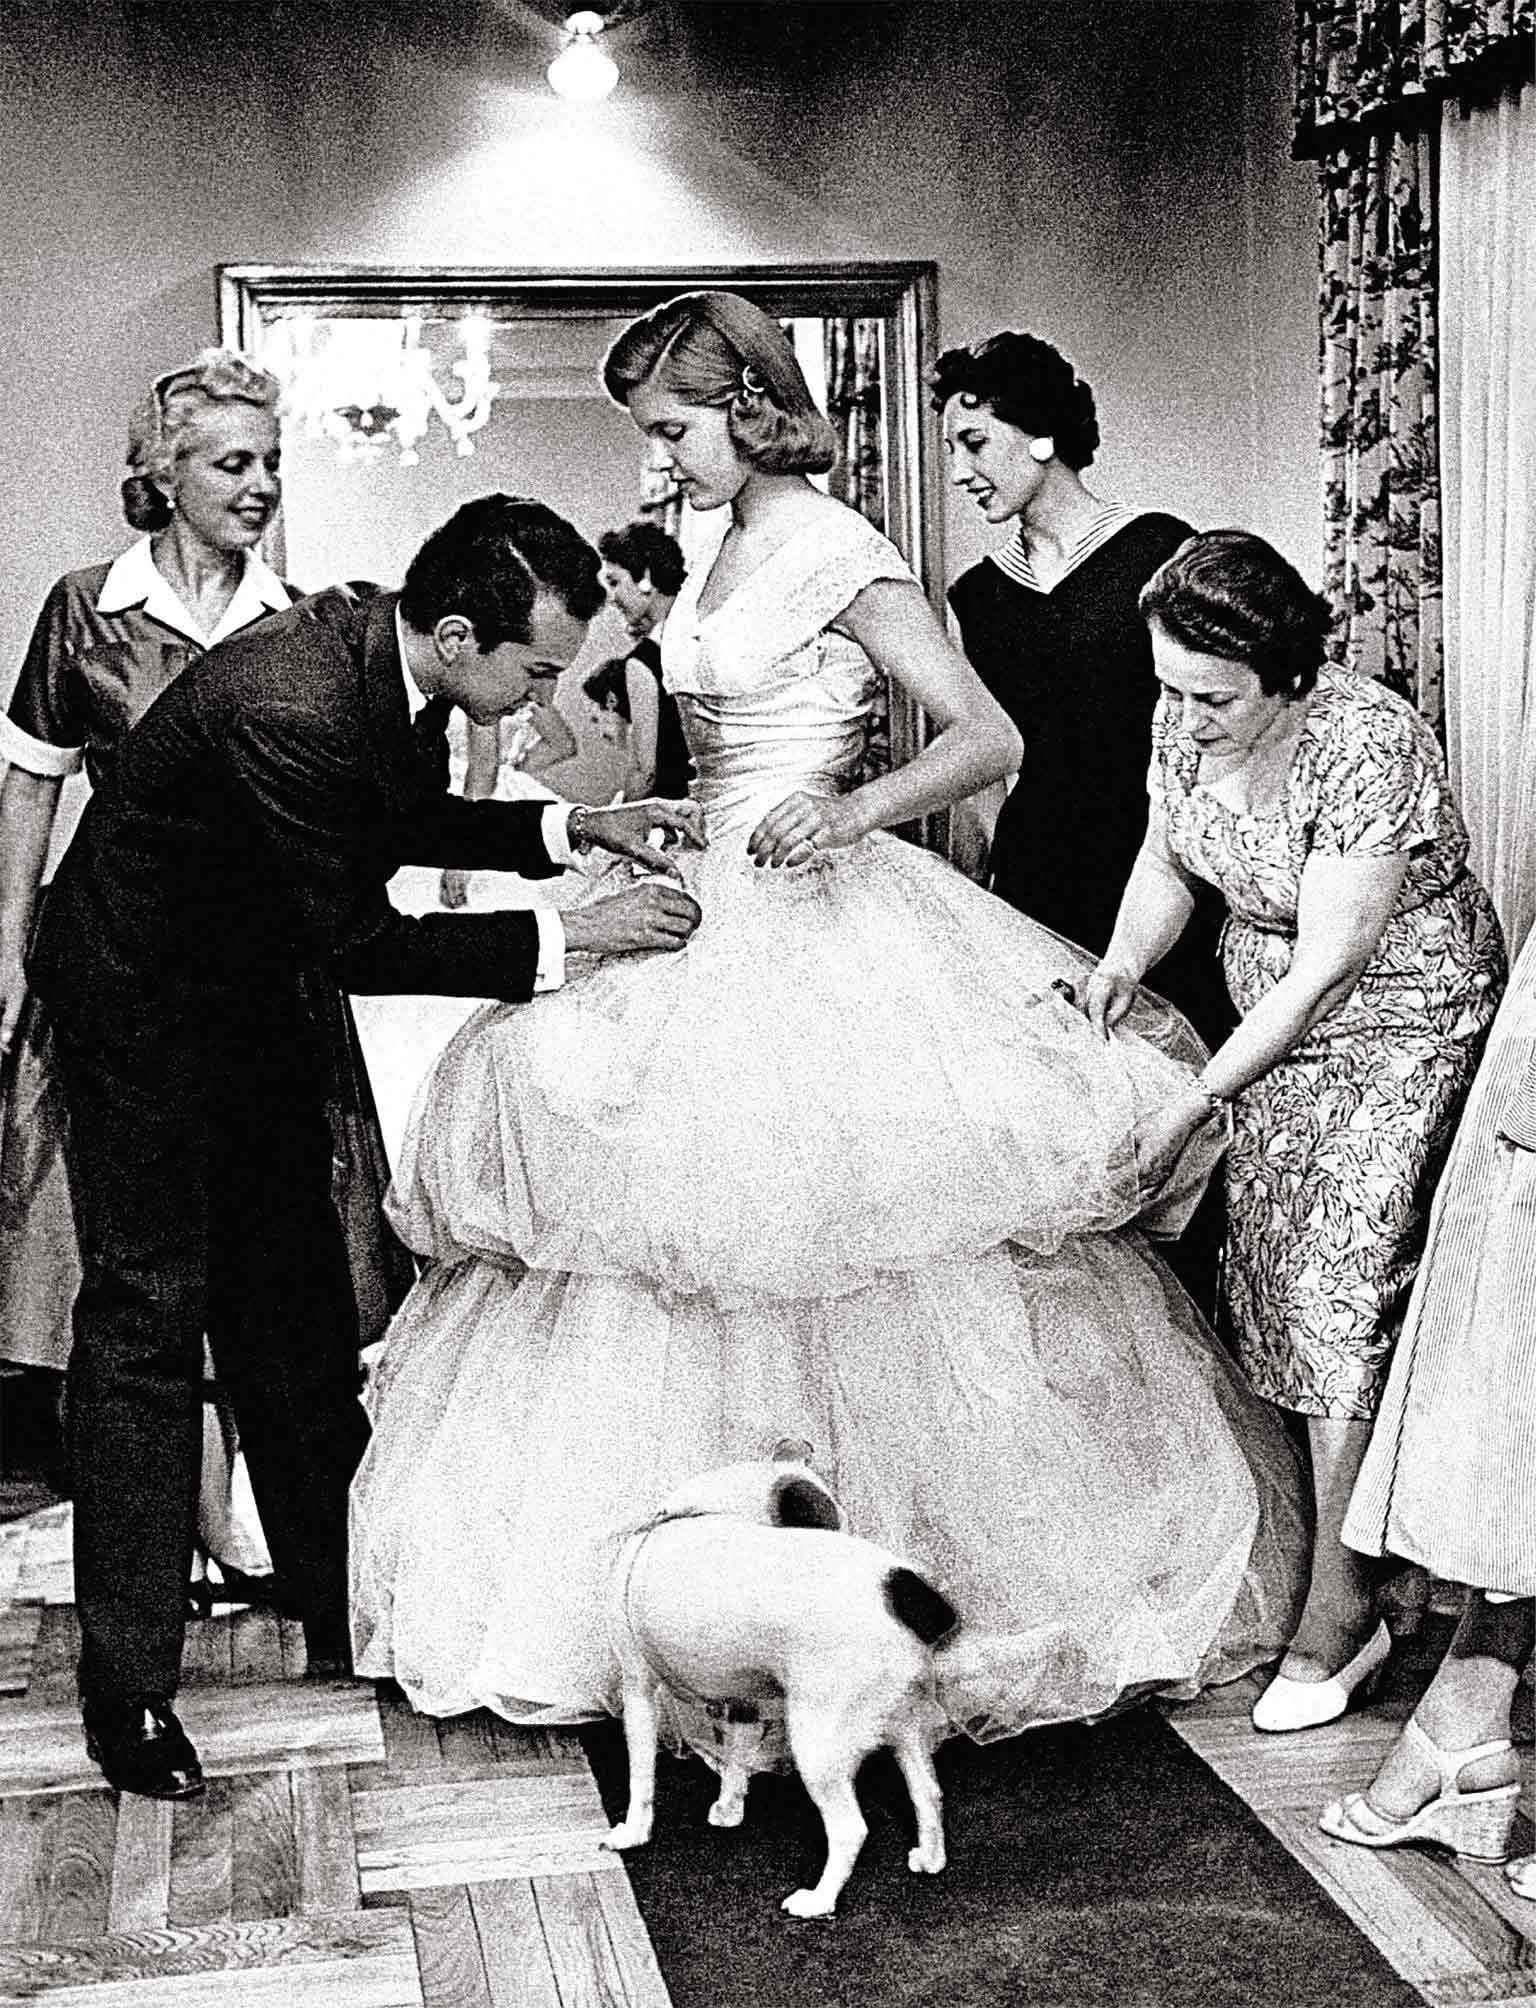 Oscar's first dress was made forBeatrice Cabot Lodge, the daughter of the U.S. ambassador to Spain, for her coming-out ball in Madrid, 1956.